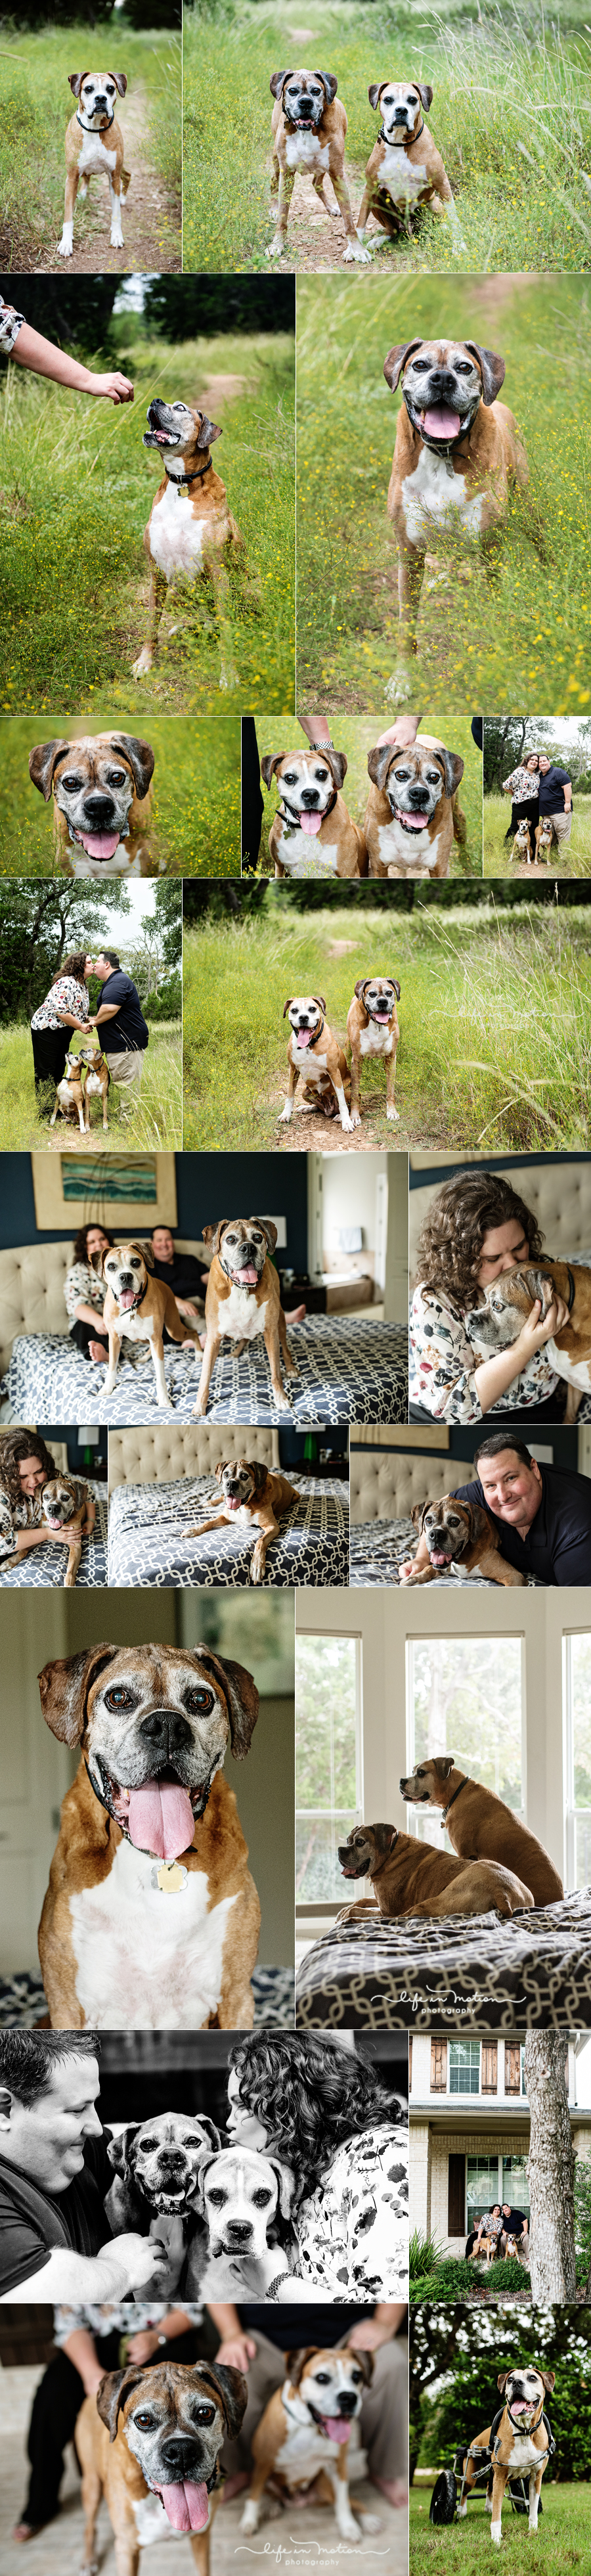 austin_pet_family_photography